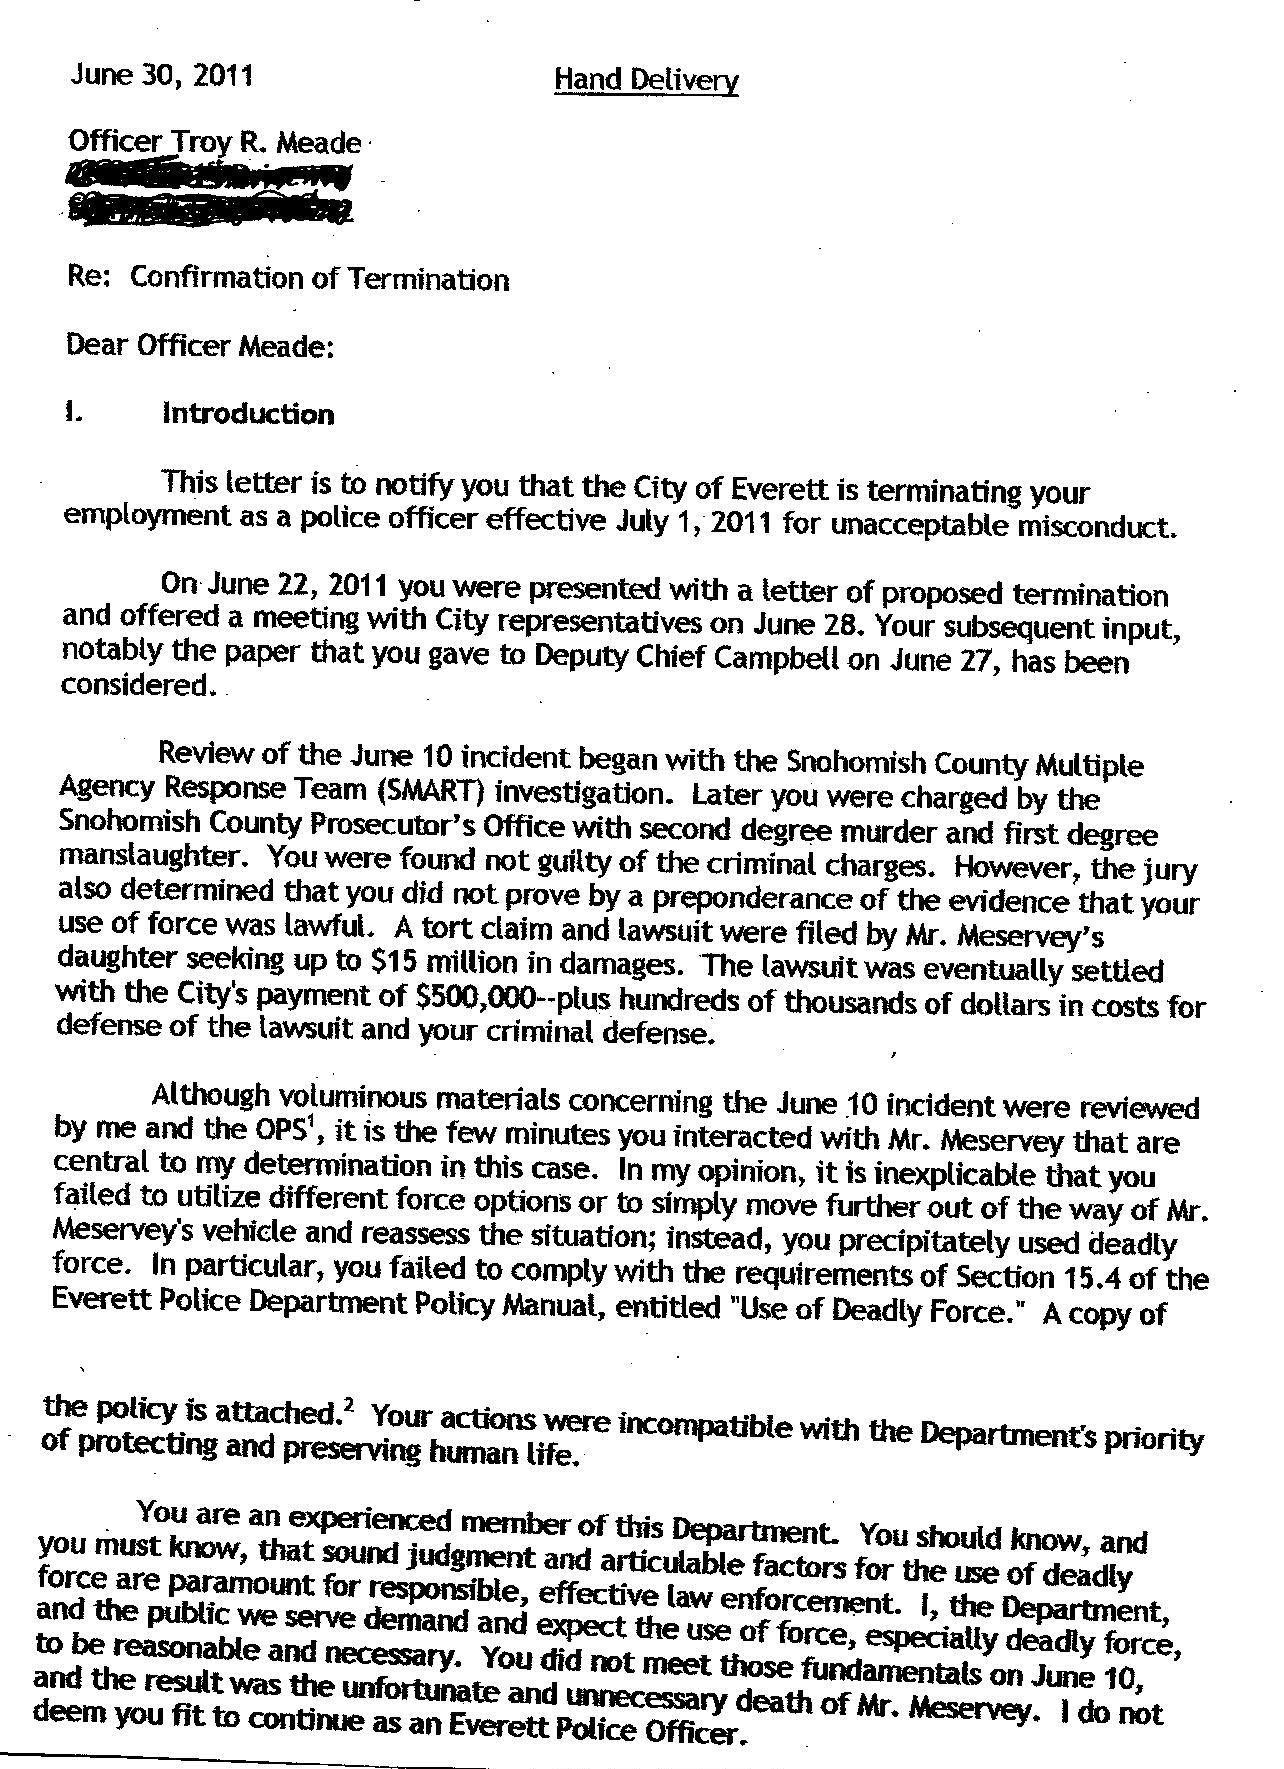 Sample Resume For Police Officer Police Detective Sample Resume Cvtips Troy Meade Fired By Everett Police Chief Jim Scharf